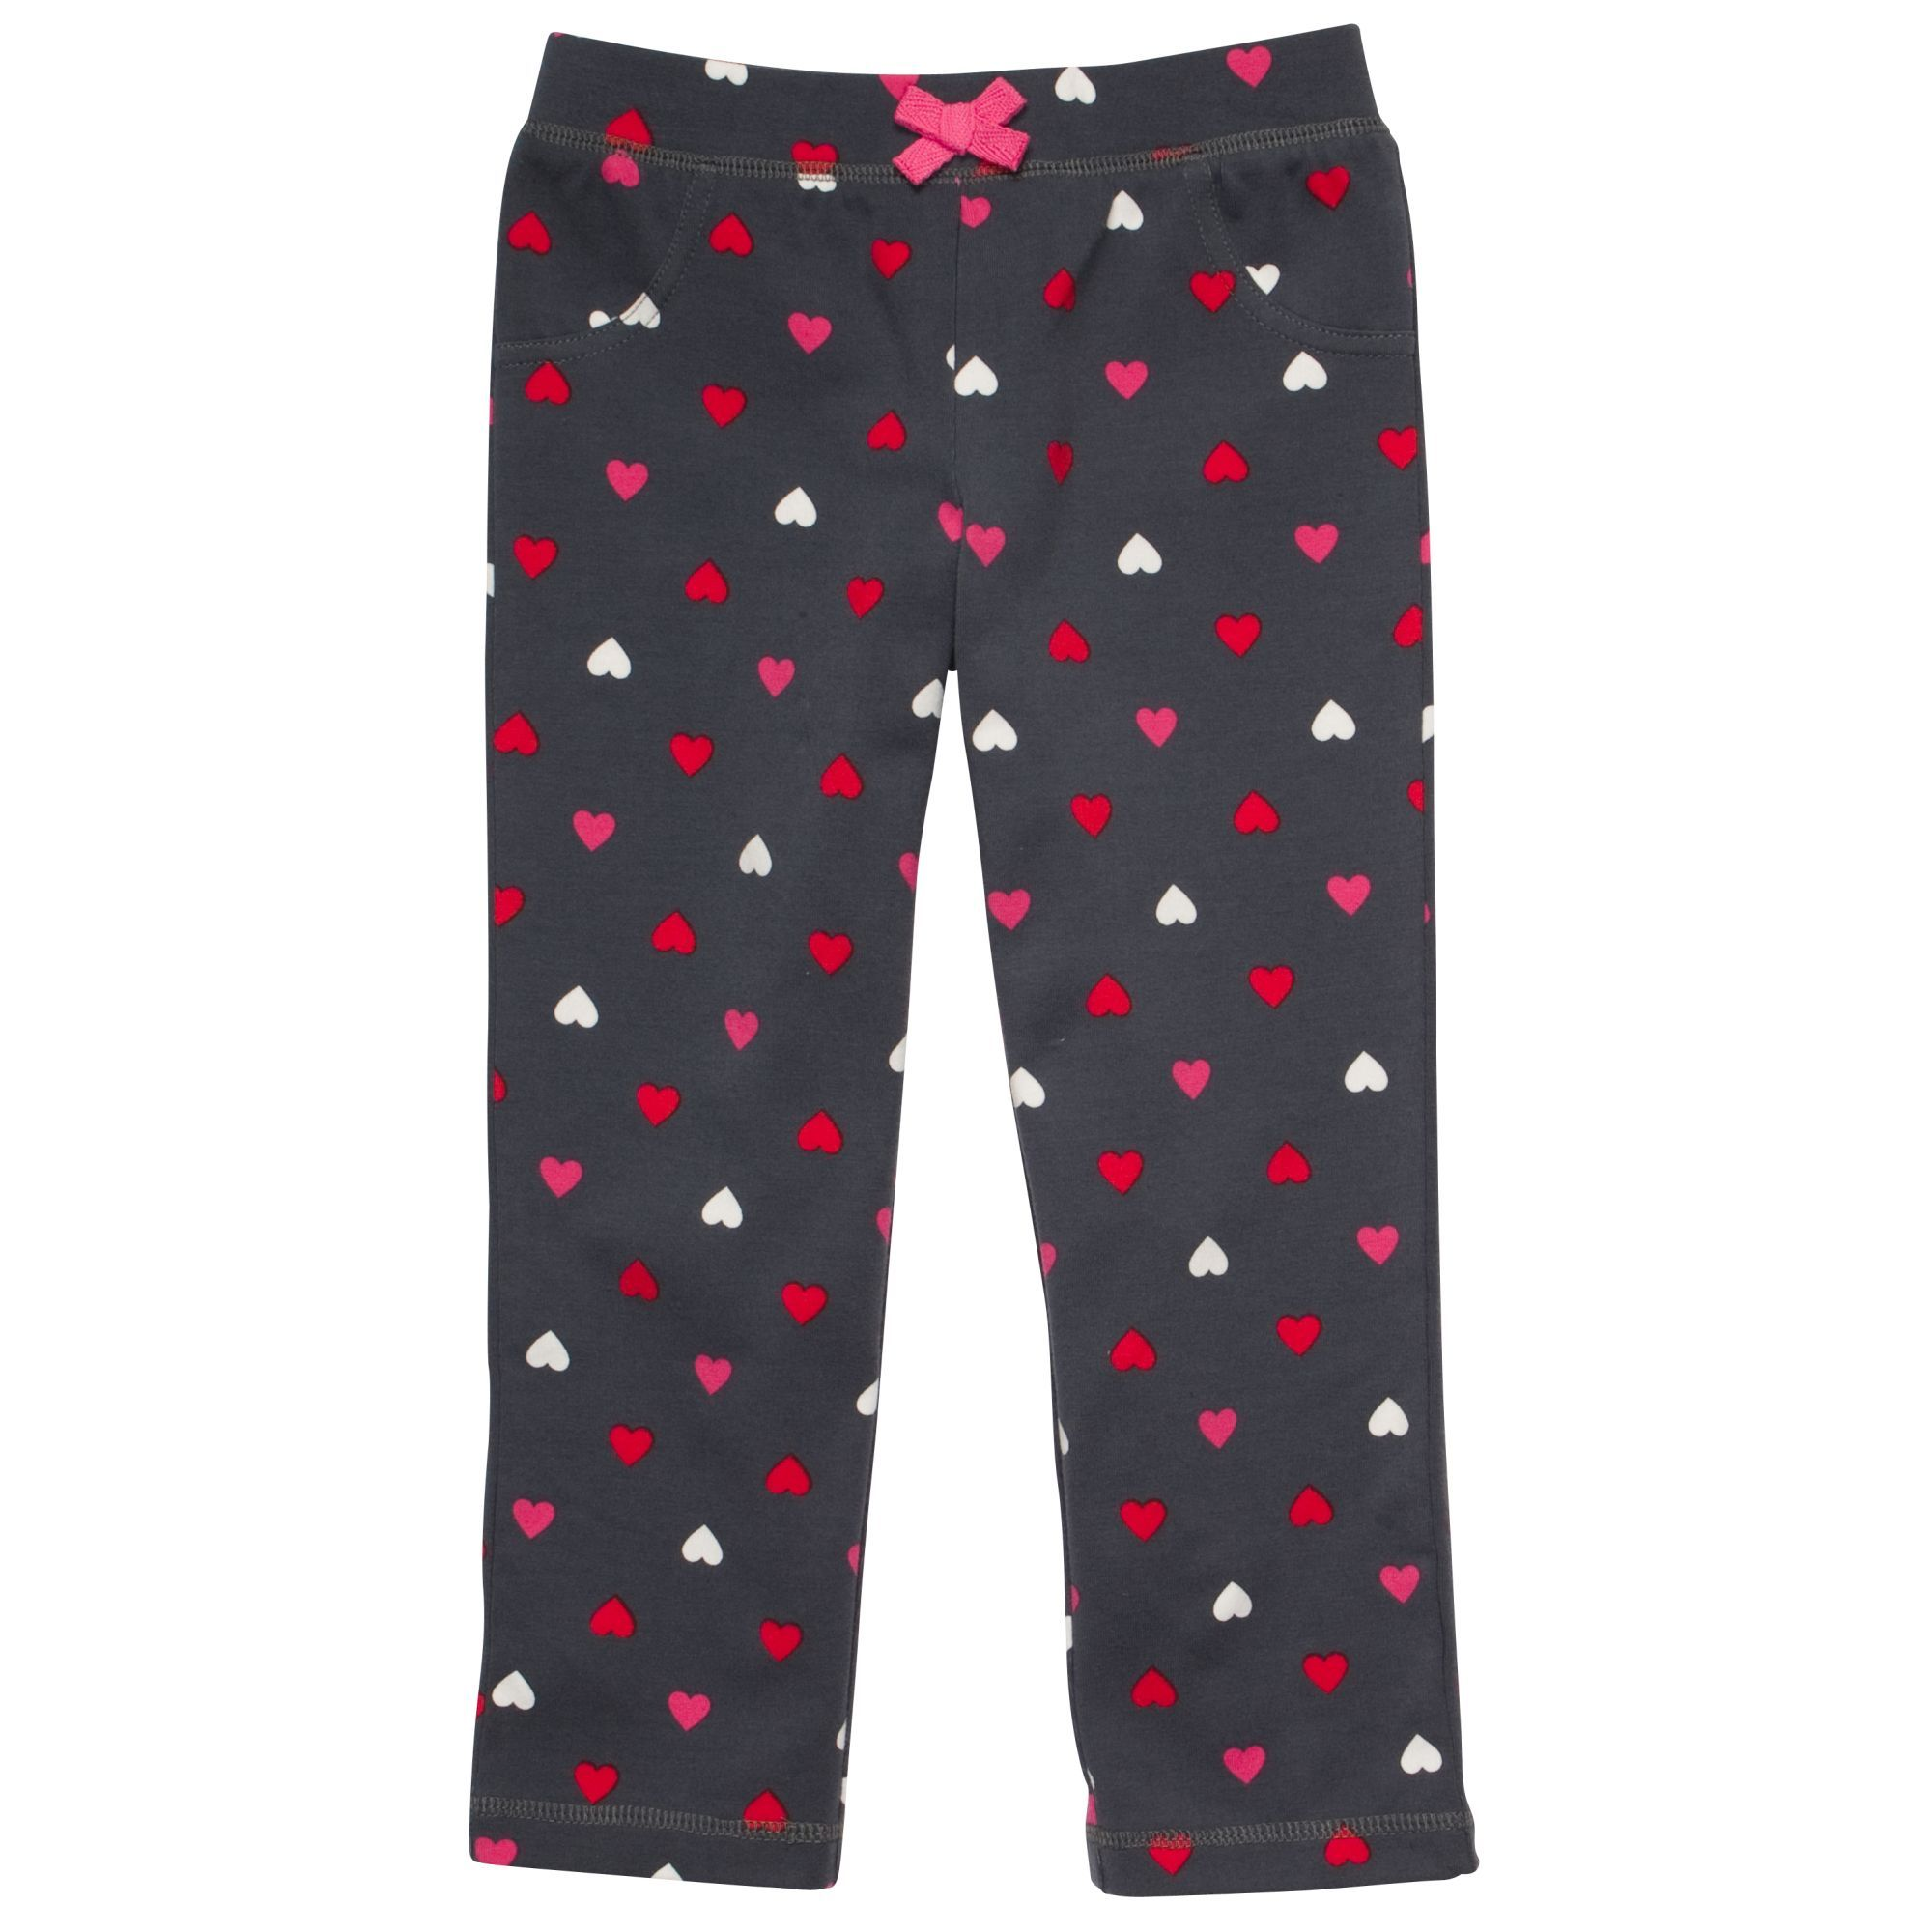 Black Hearts Yoga Stretch Carter's girls pants